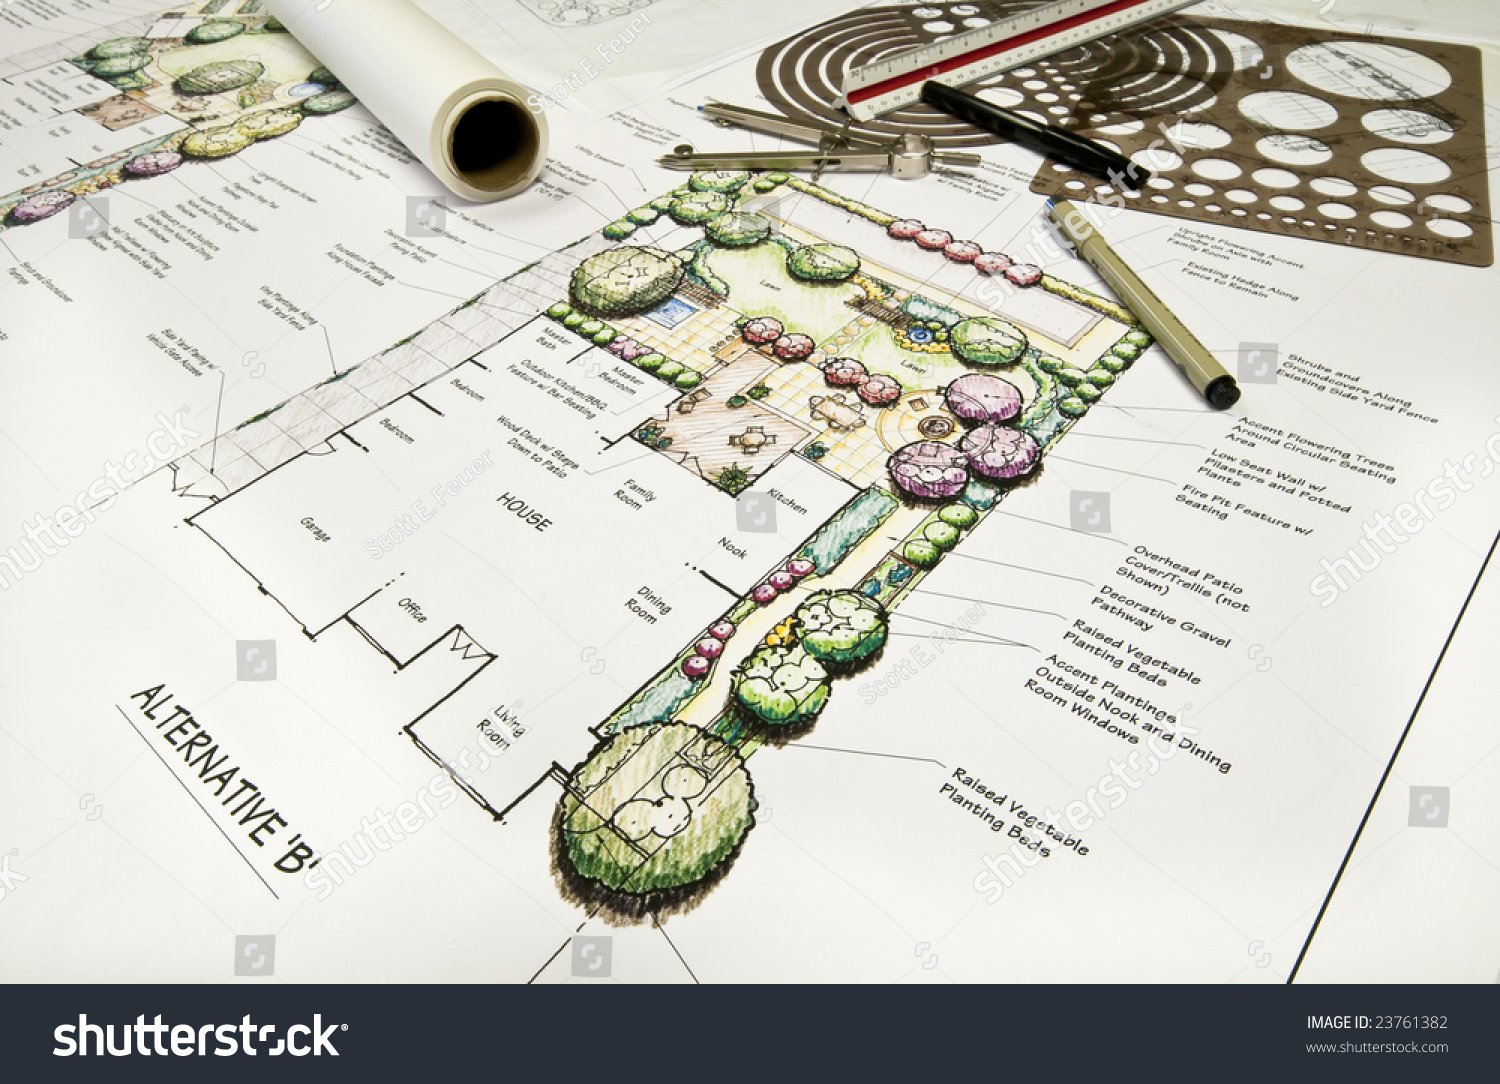 hand drawn residential landscape plan